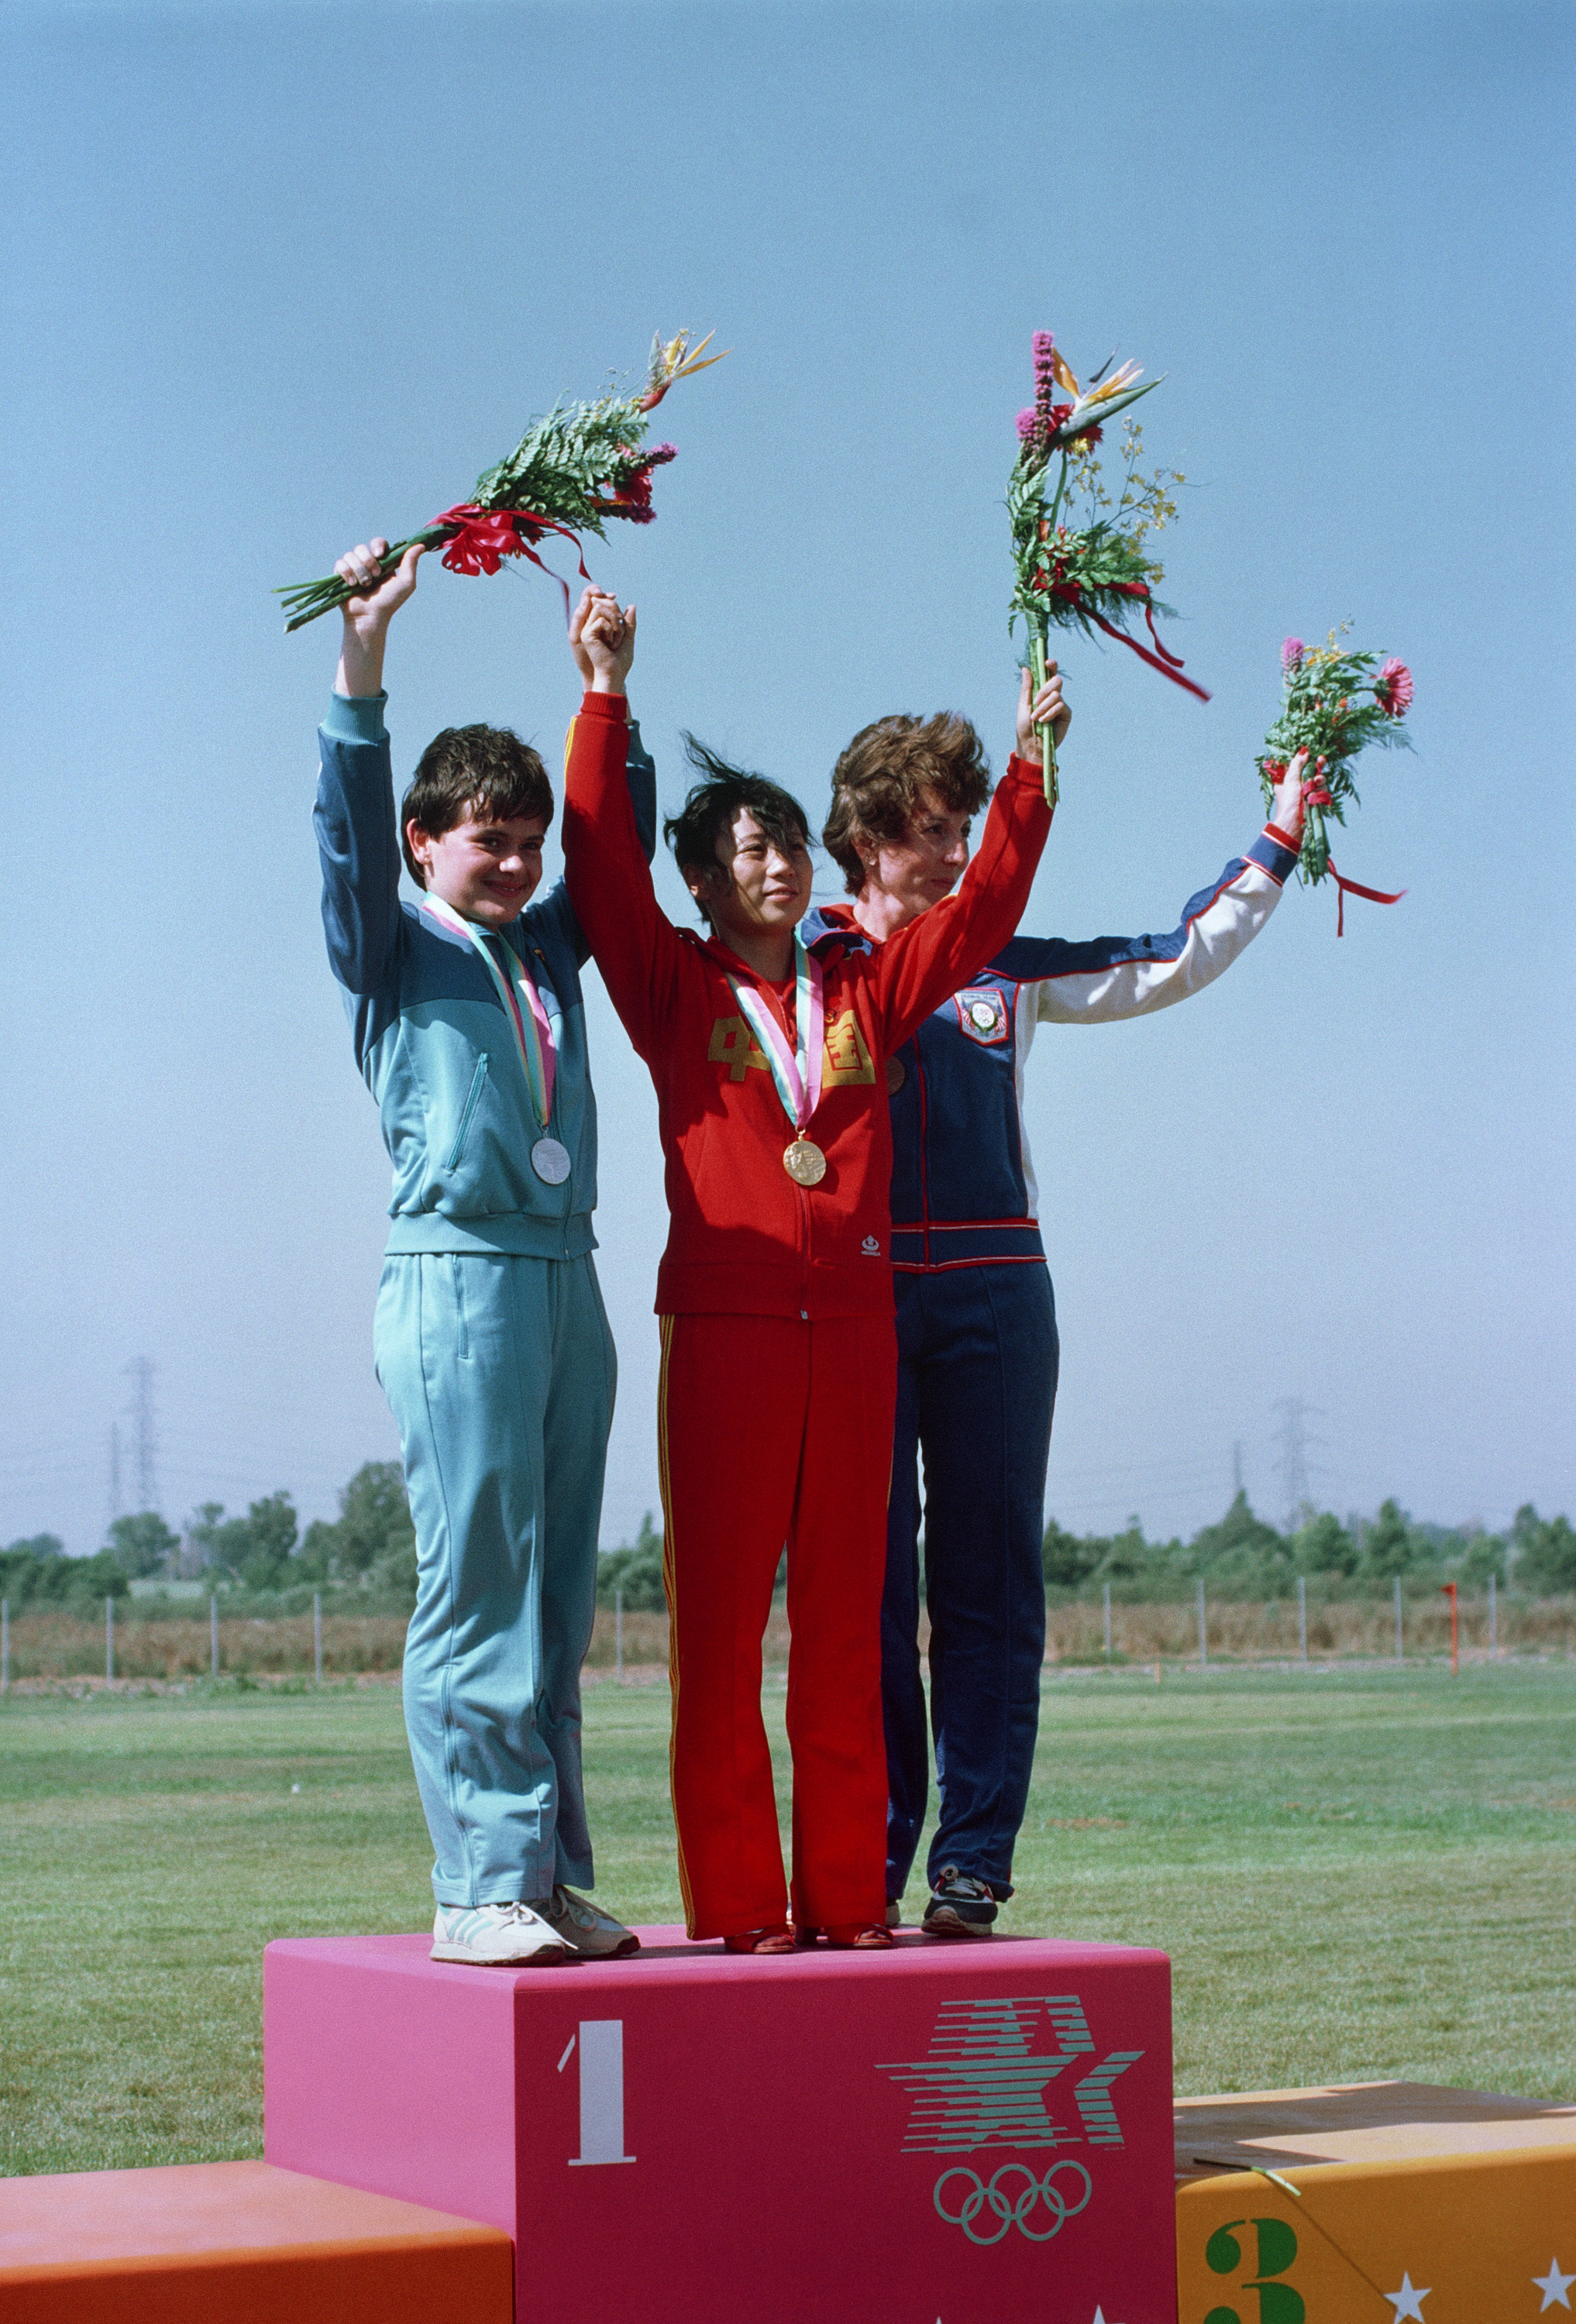 Army Reserve Captain Wanda R. Jewell, right, stands with the gold and silver medalist after receiving a bronze medal in the small-bore rifle English competition at the 1984 Summer Olympics